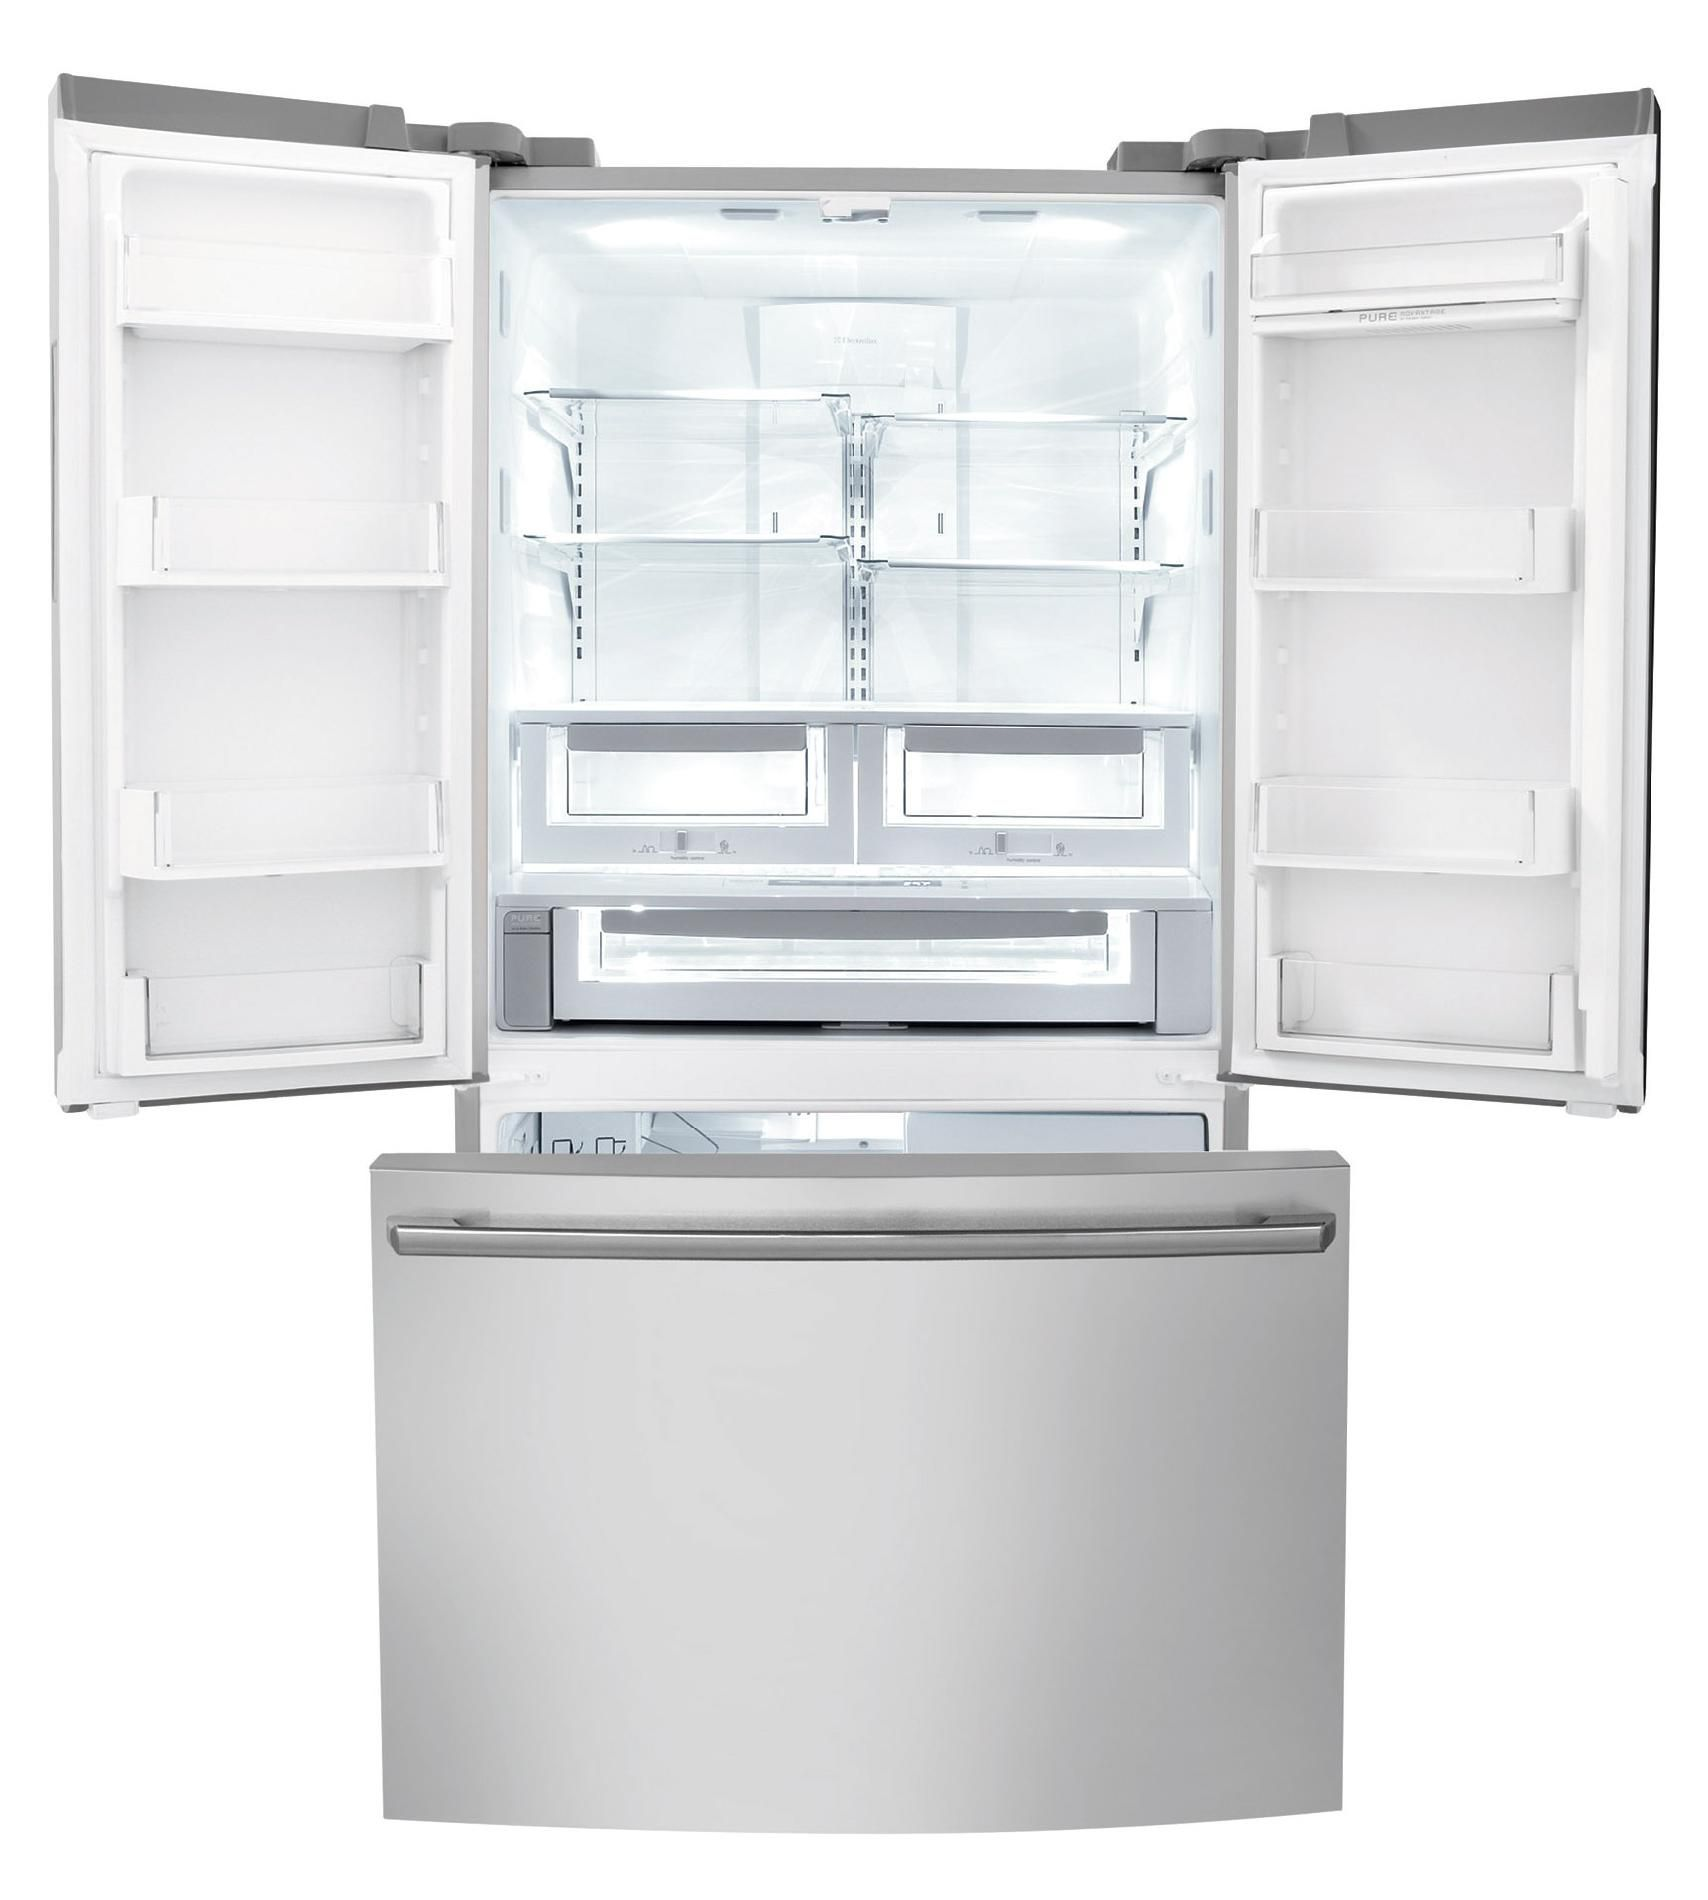 Electrolux EI23BC80KS 22.5 cu. ft. Counter-depth French Door Refrigerator w/ IQ-Touch™ Controls - Stainless Steel